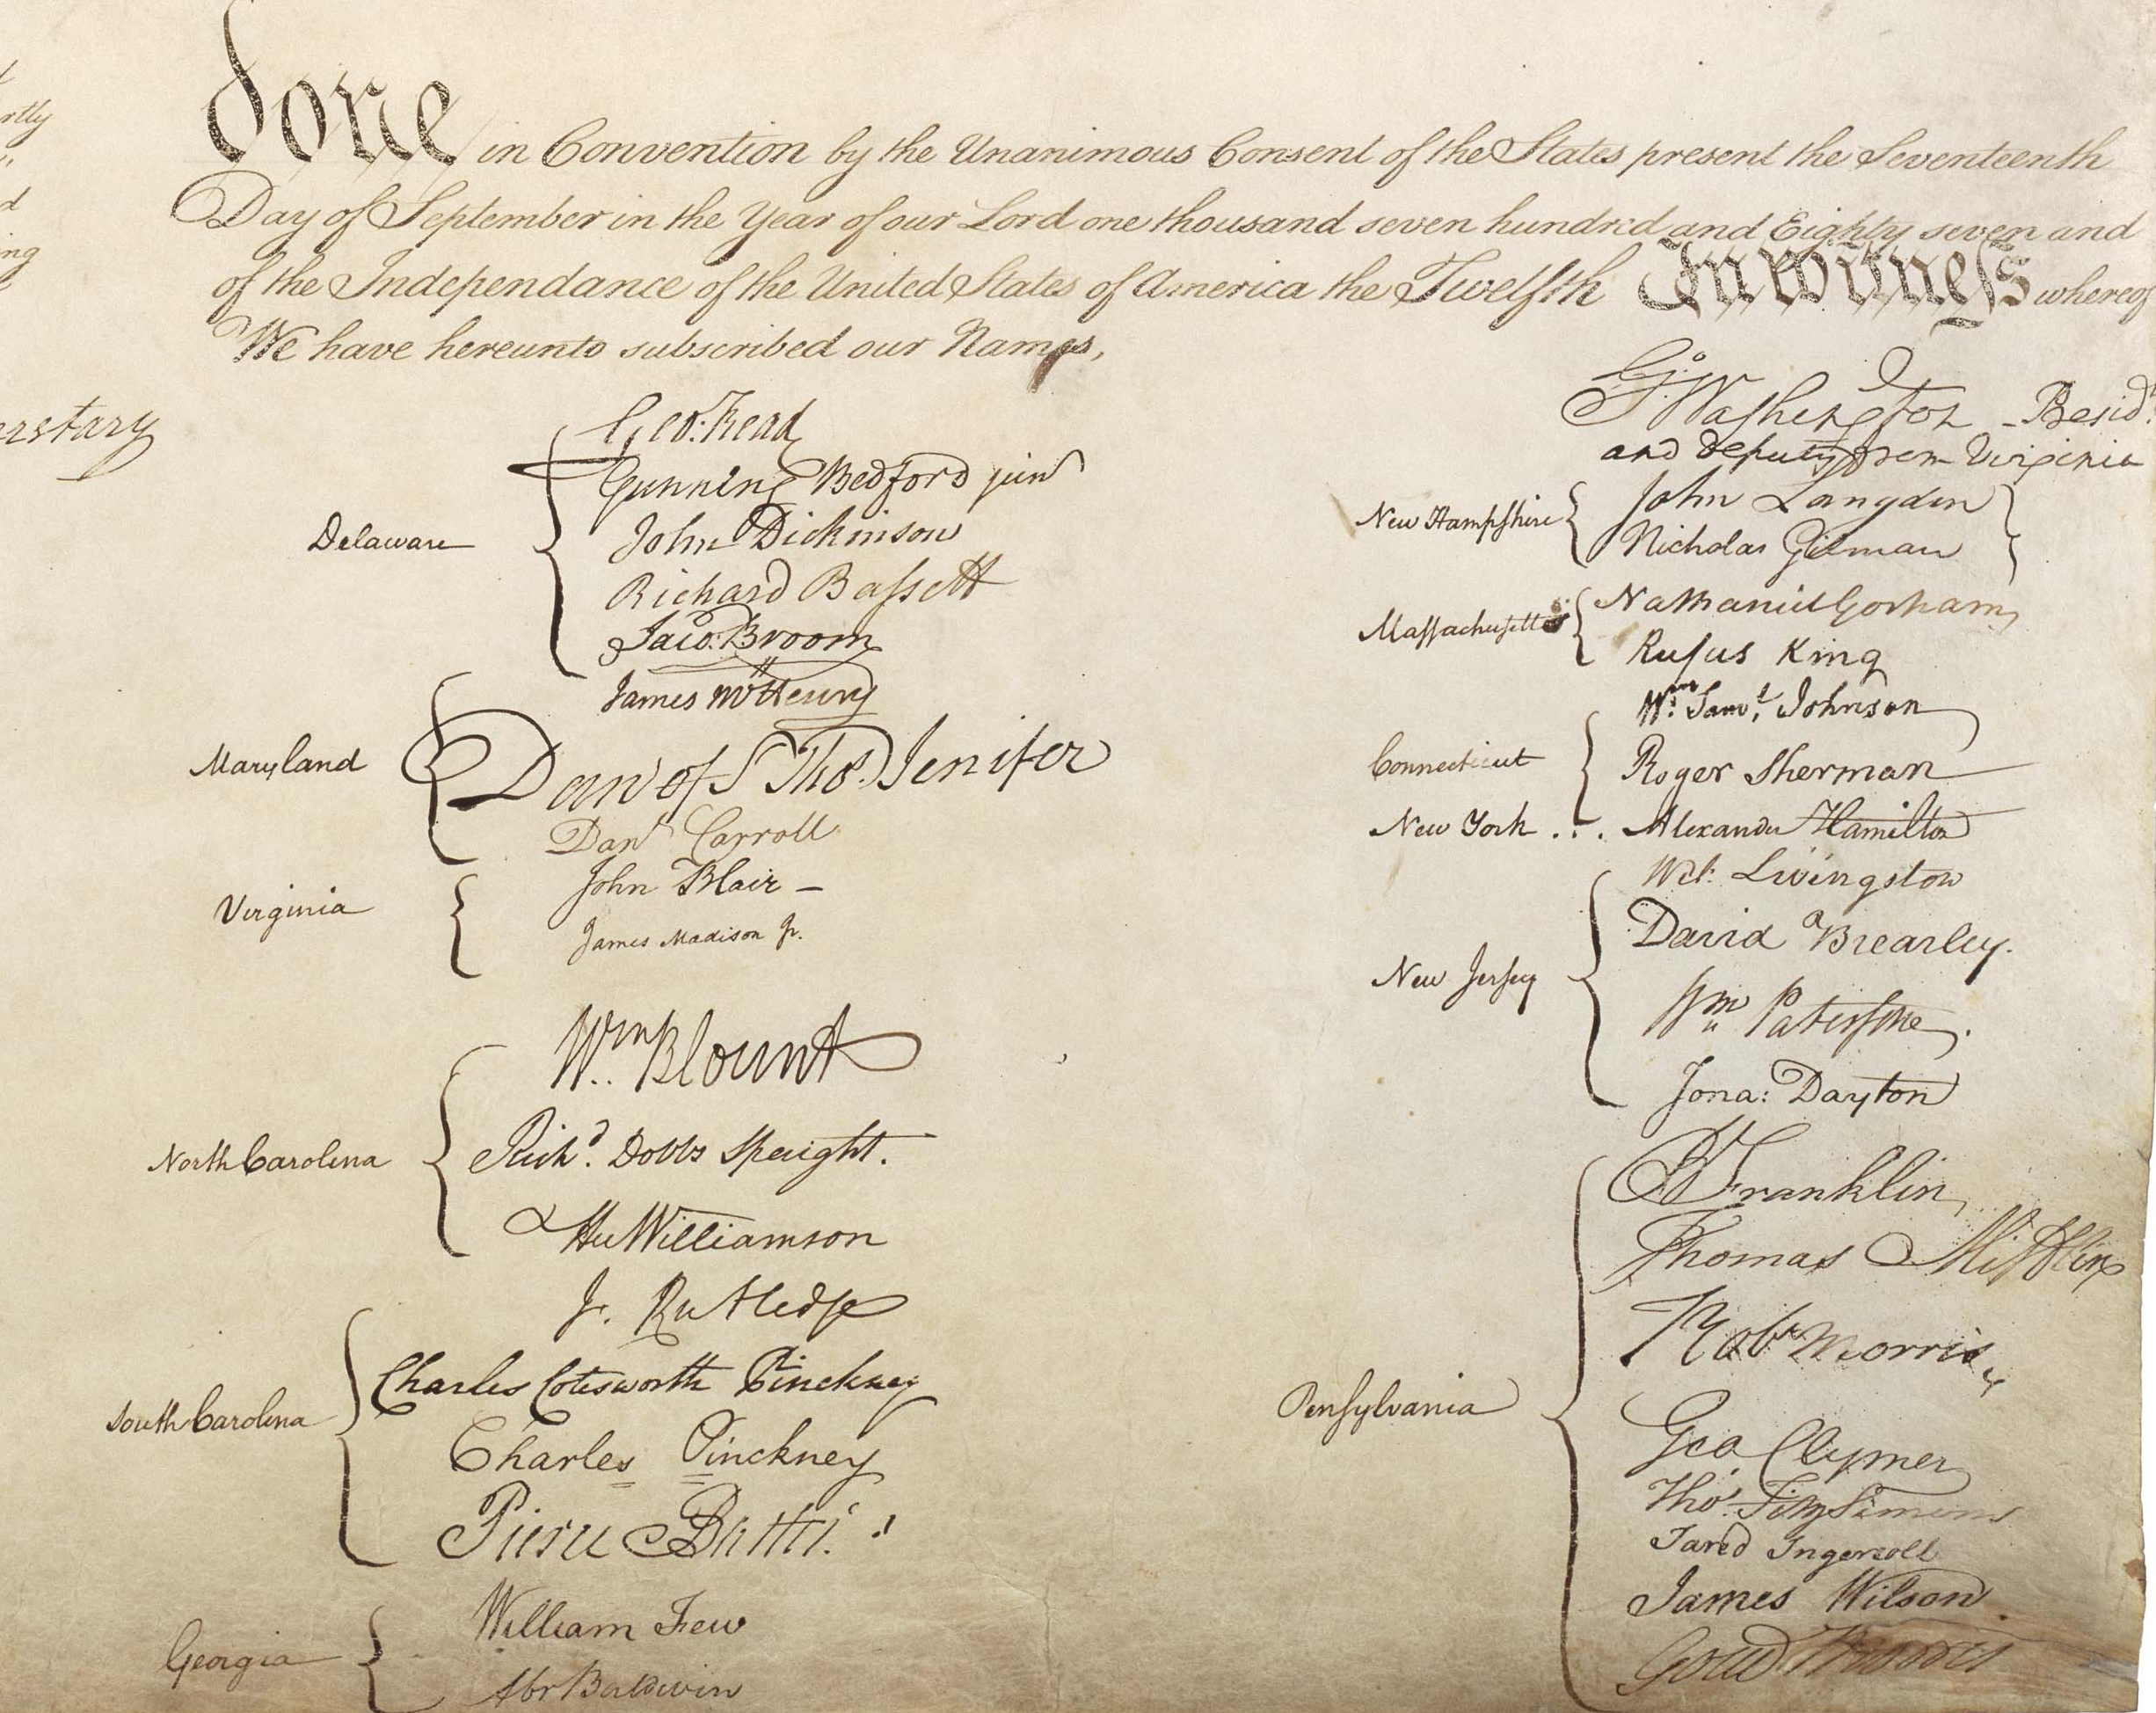 What type of document is the U.S. Constitution?